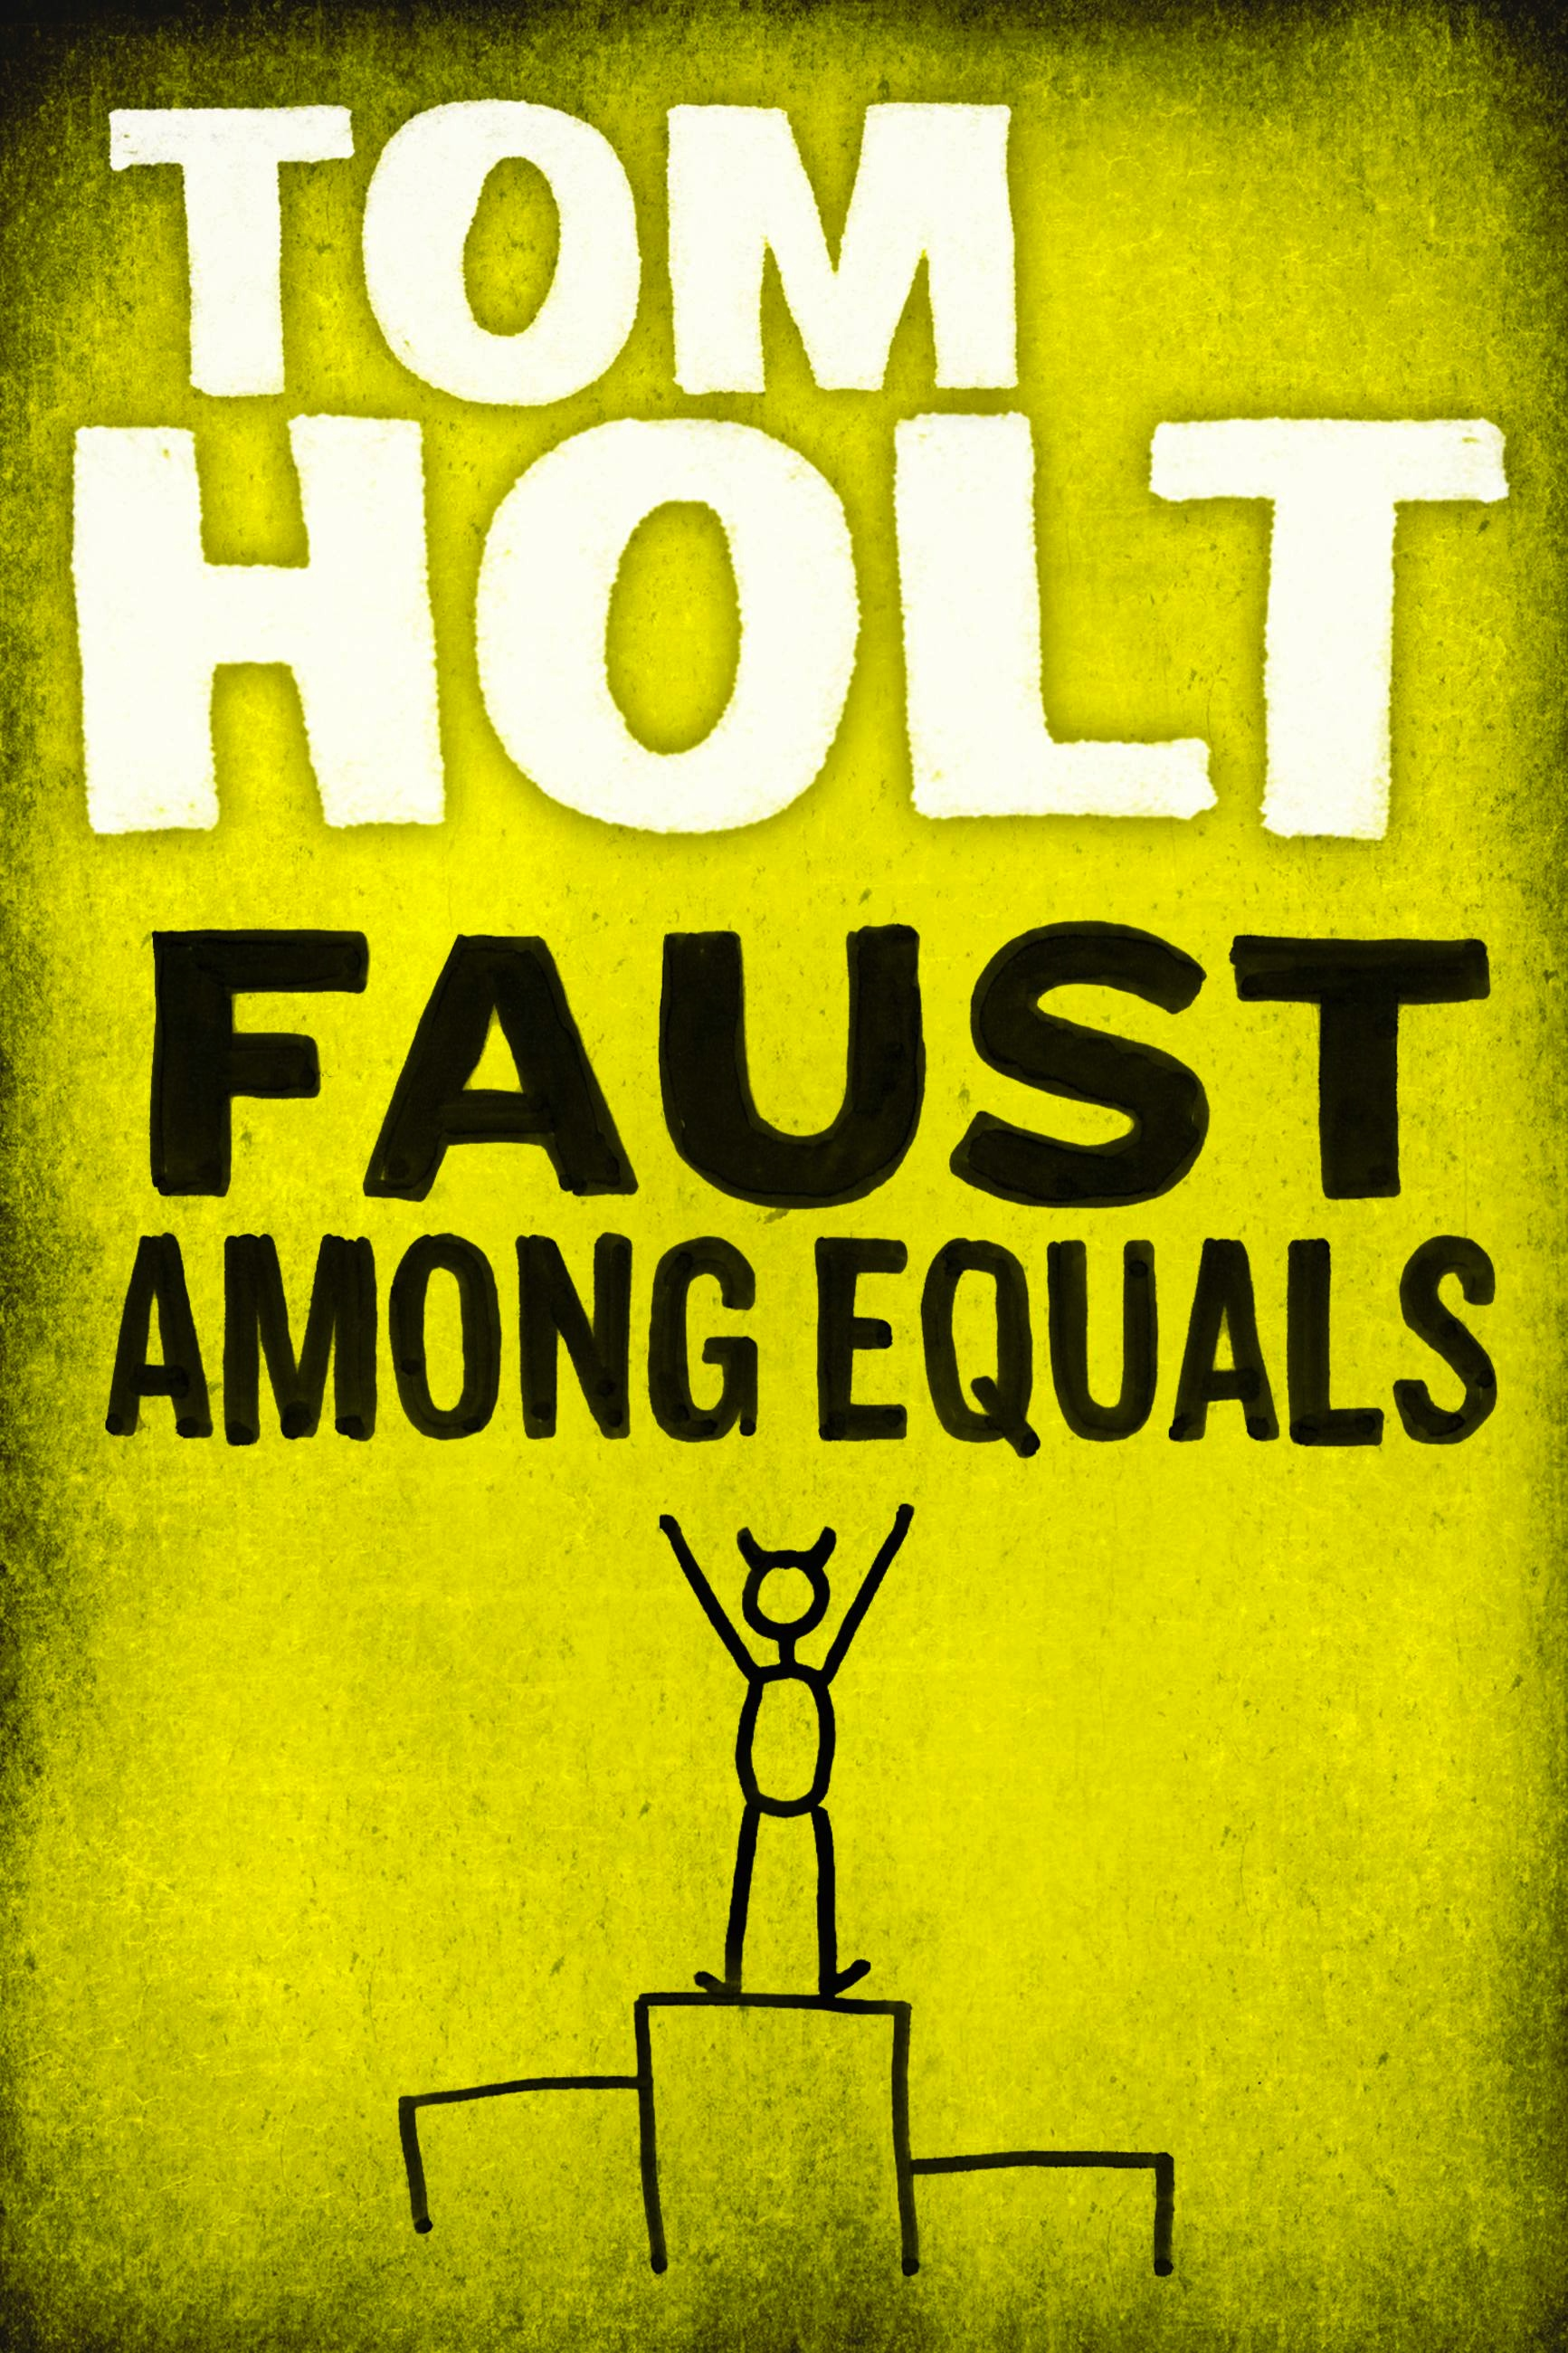 Faust Among Equals